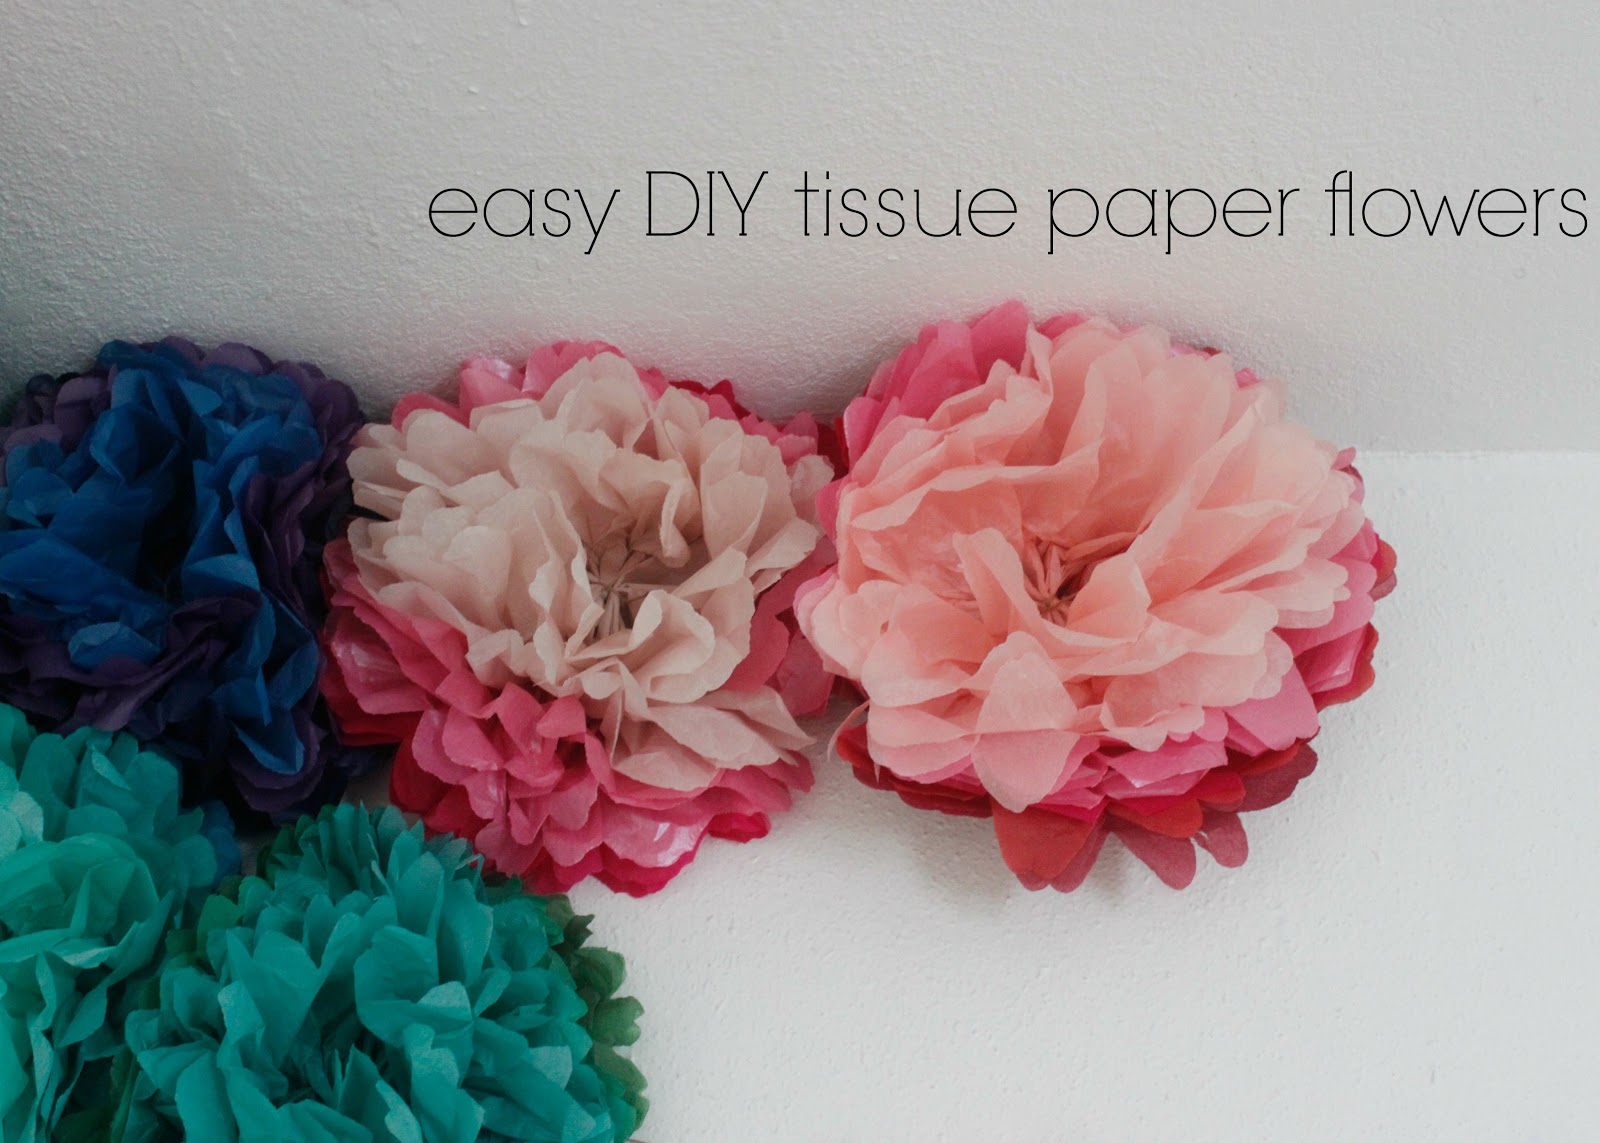 Camp patton tissue paper flower tutorial tissue paper flower tutorial 04 may 2016 mightylinksfo